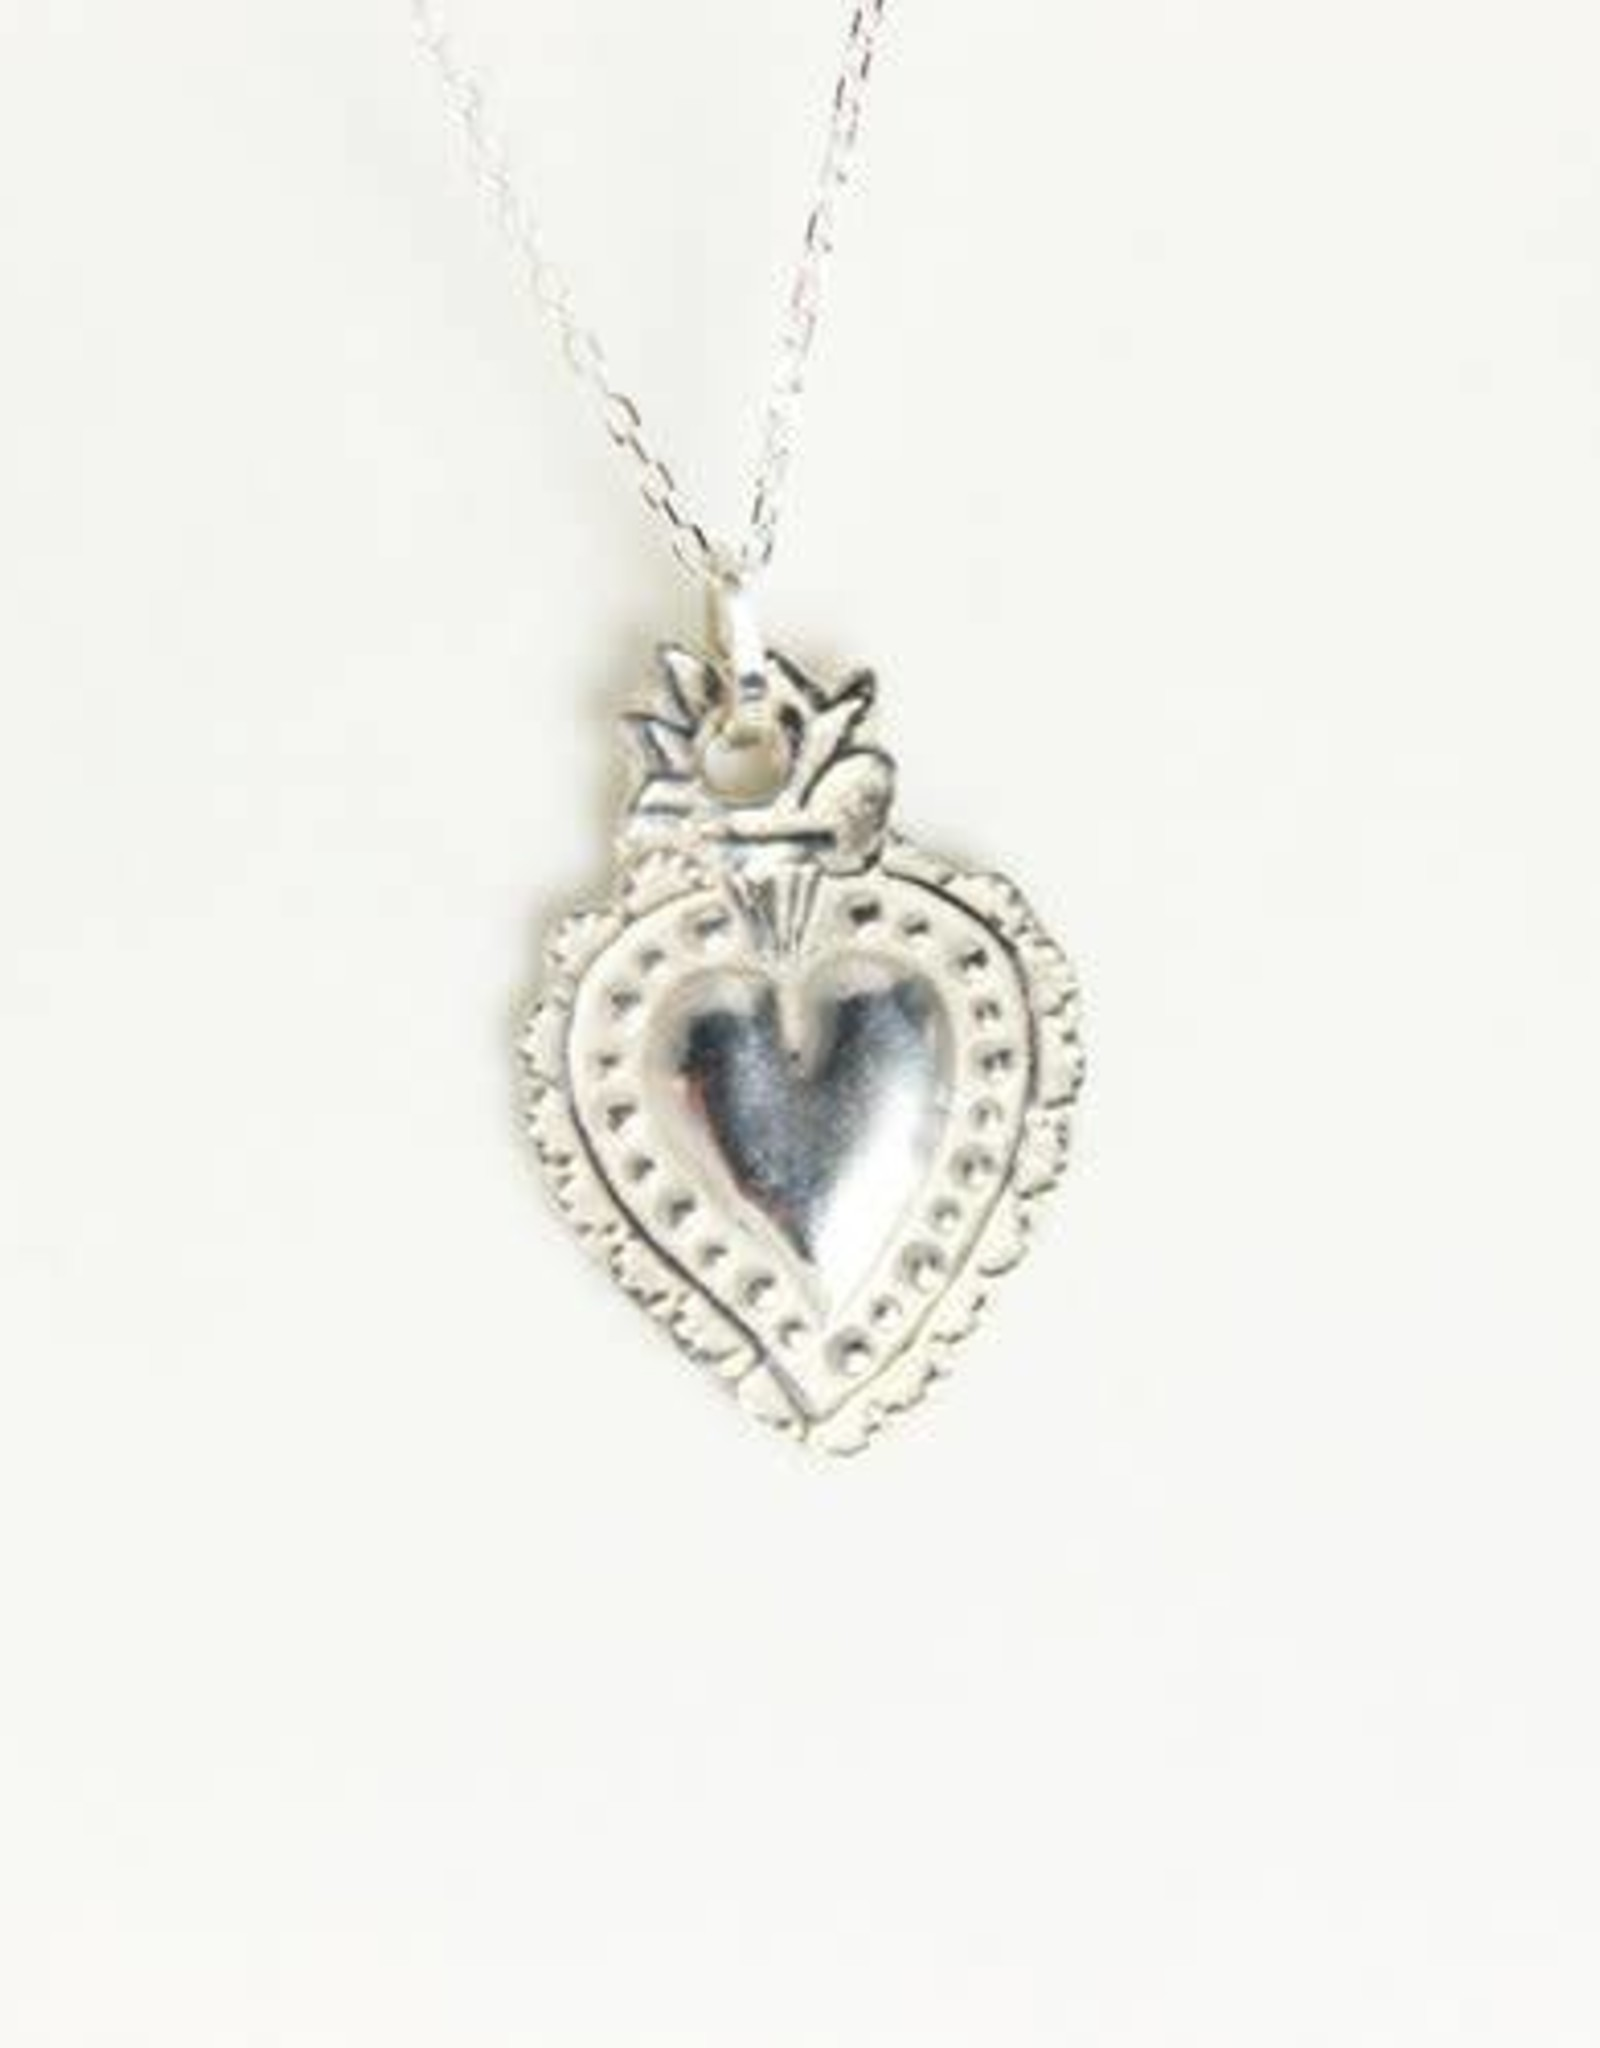 Robin Haley Jewelry Milagro (Miracles) Artifact Necklace